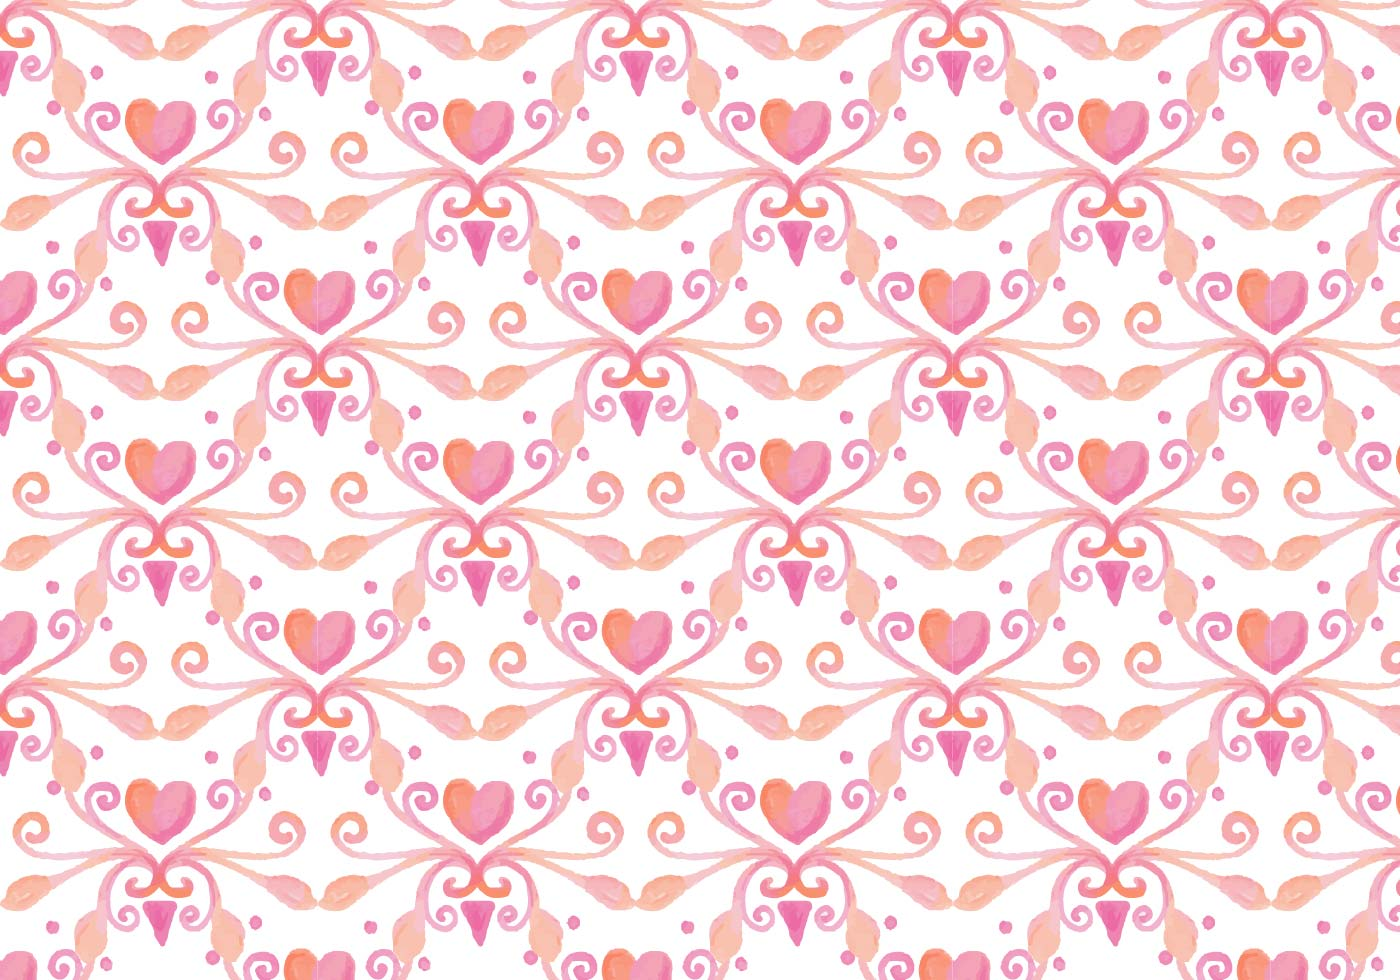 free vector watercolor heart royal background   download